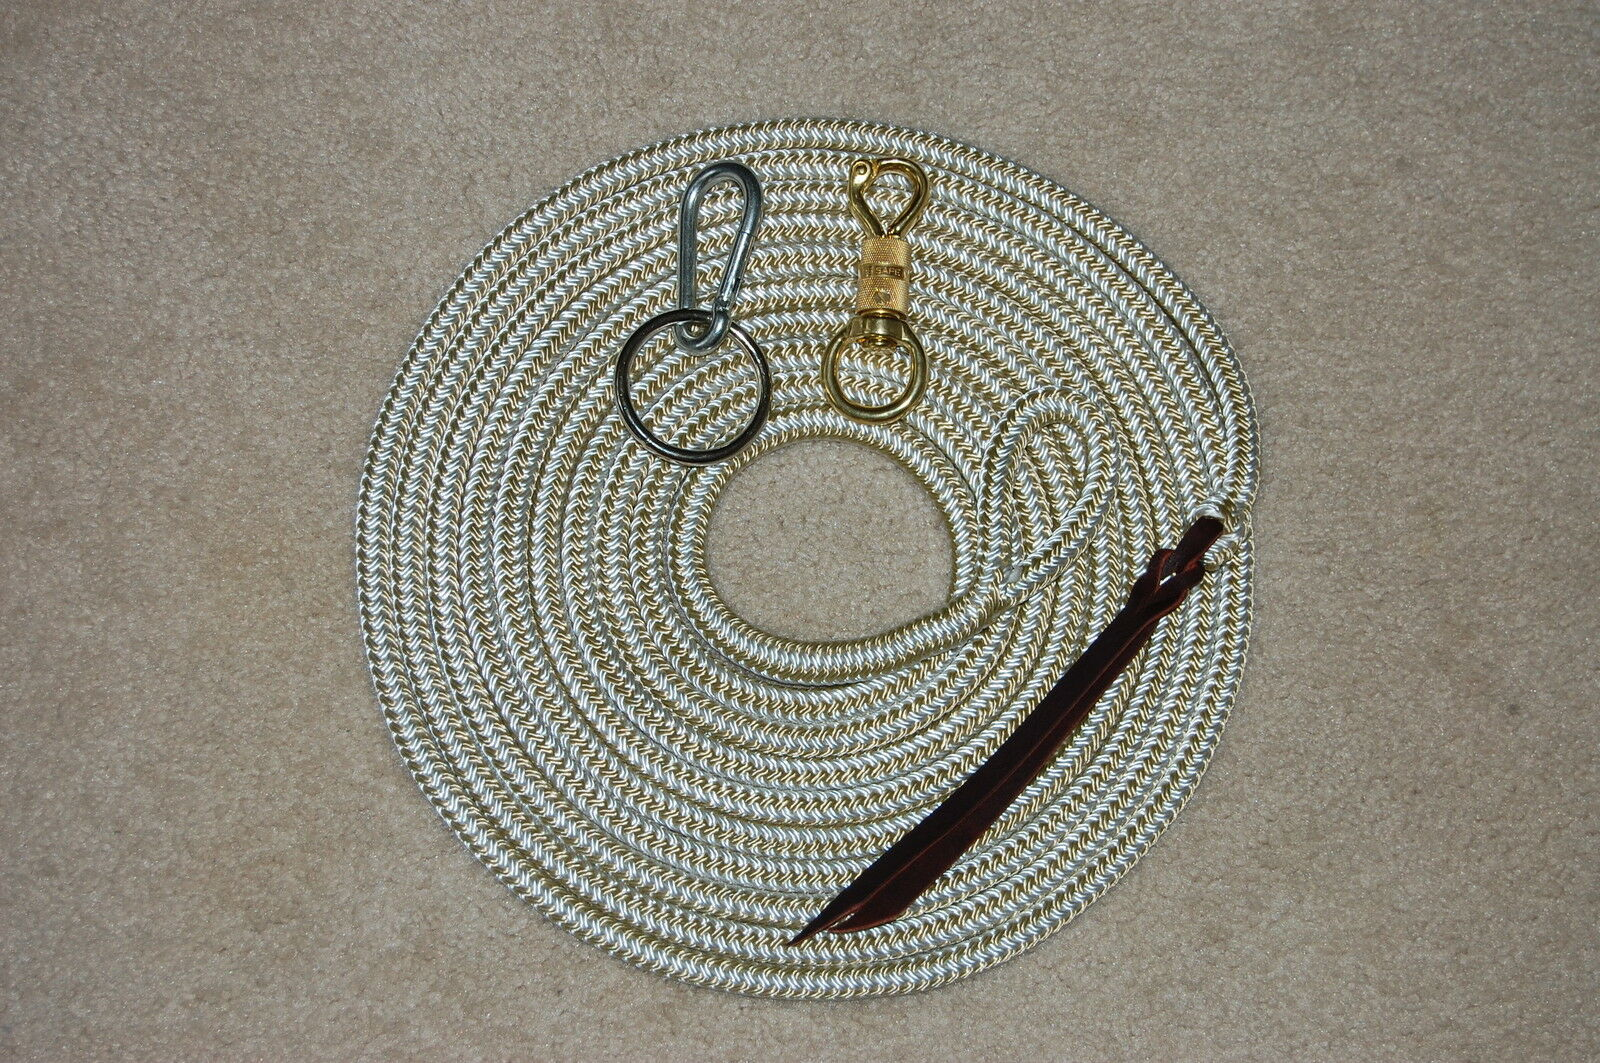 22' LONGE LINE LEAD  ROPE WITH BRASS SNAP & RING CARABINER FOR PARELLI TRAINING  free shipping & exchanges.